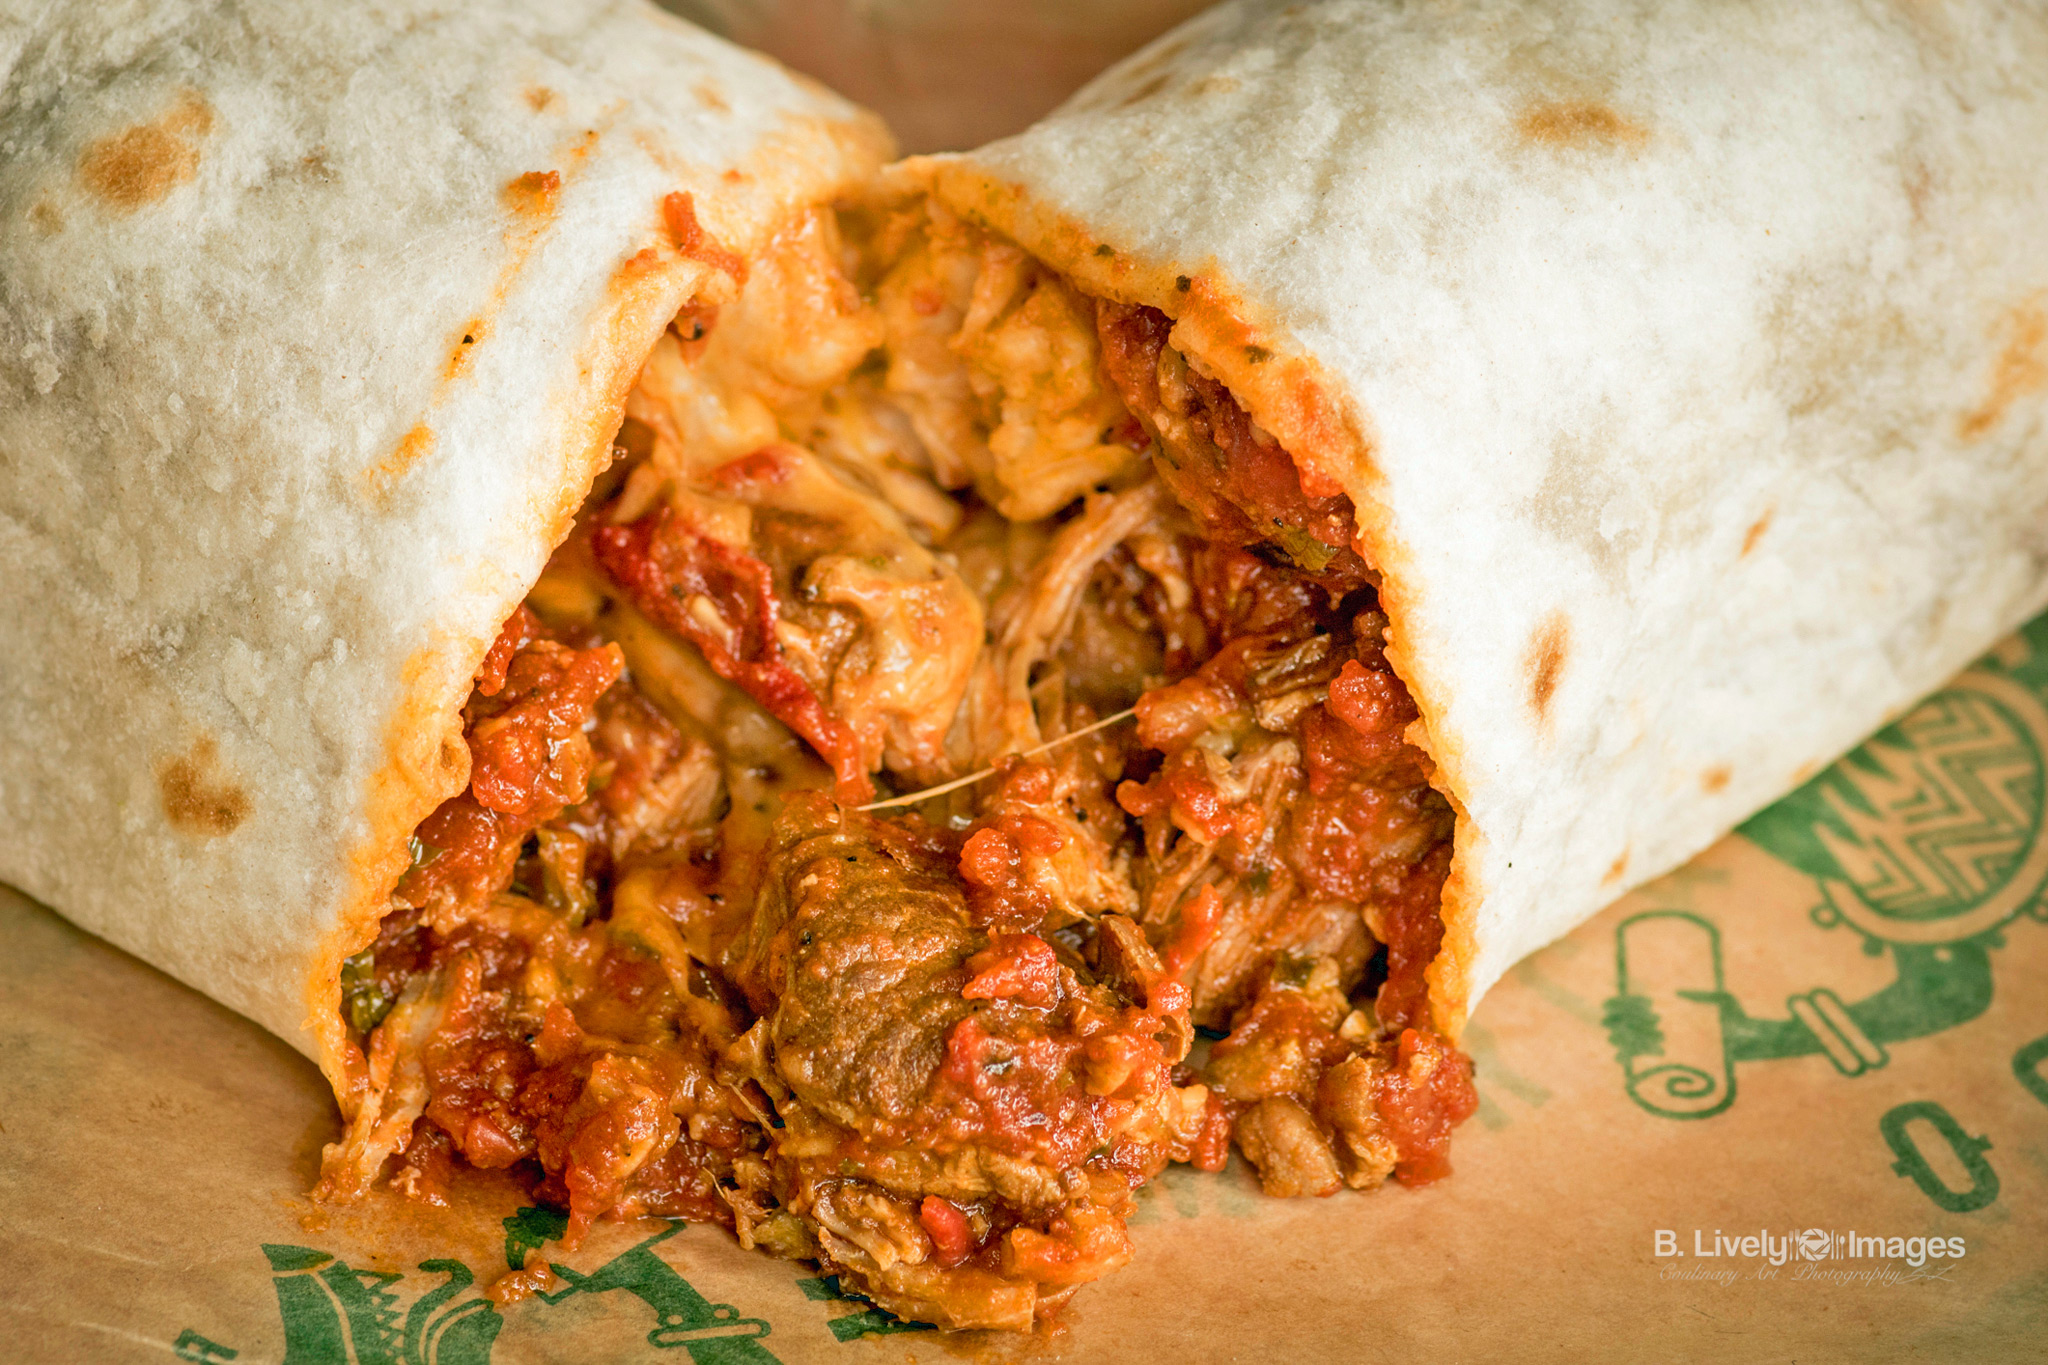 Pork Colorado Burrito - Tender Pork, Mild Tomato Chipotle Sauce, Sour Cream, Cheese